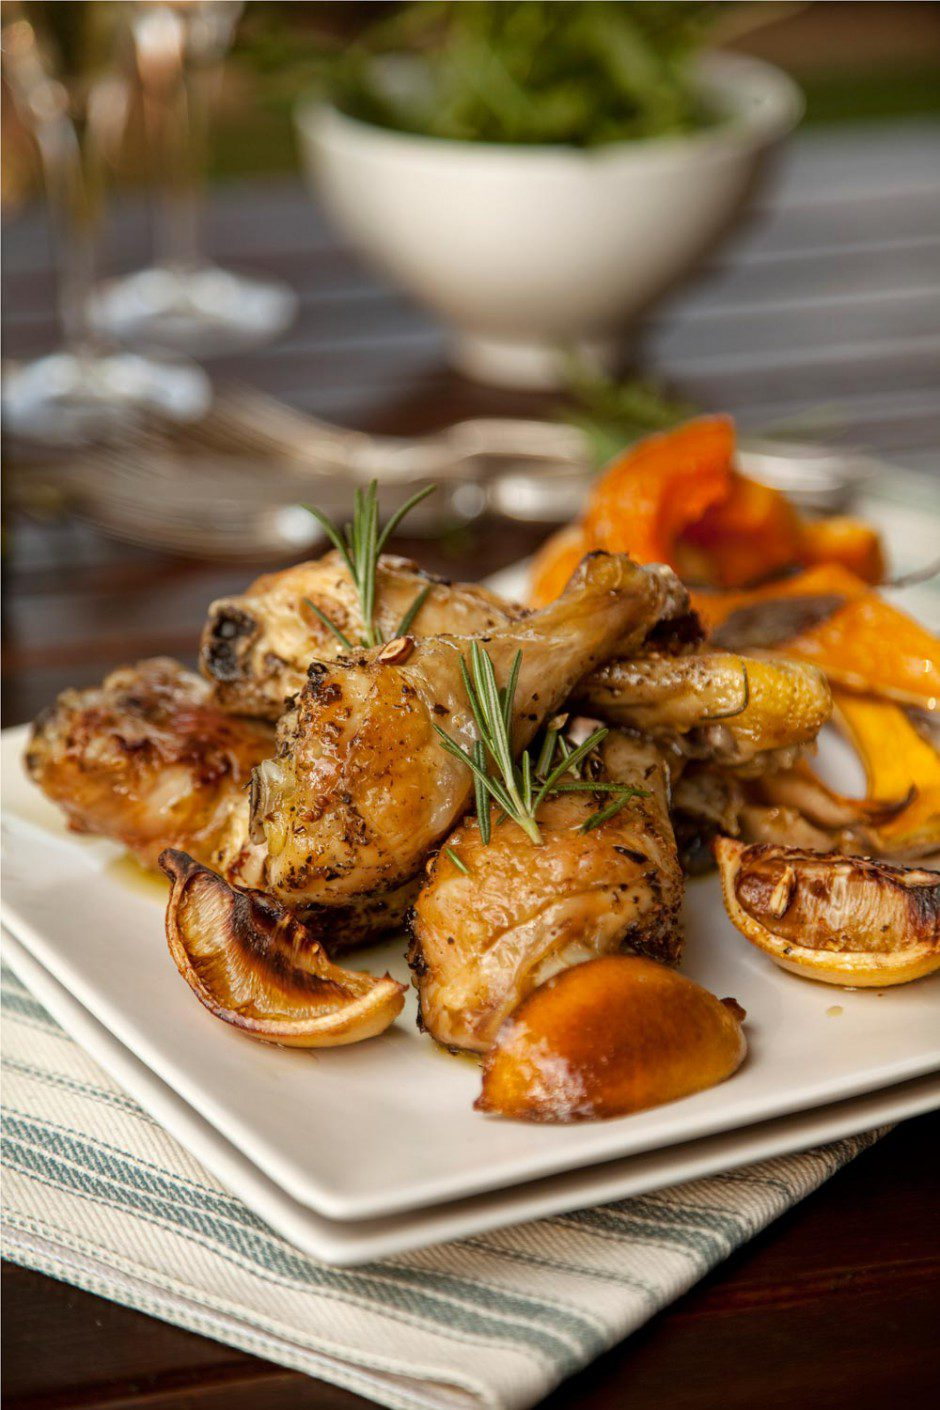 Garlic, Lemon and Rosemary Roast Chicken Served with Baked Butternut